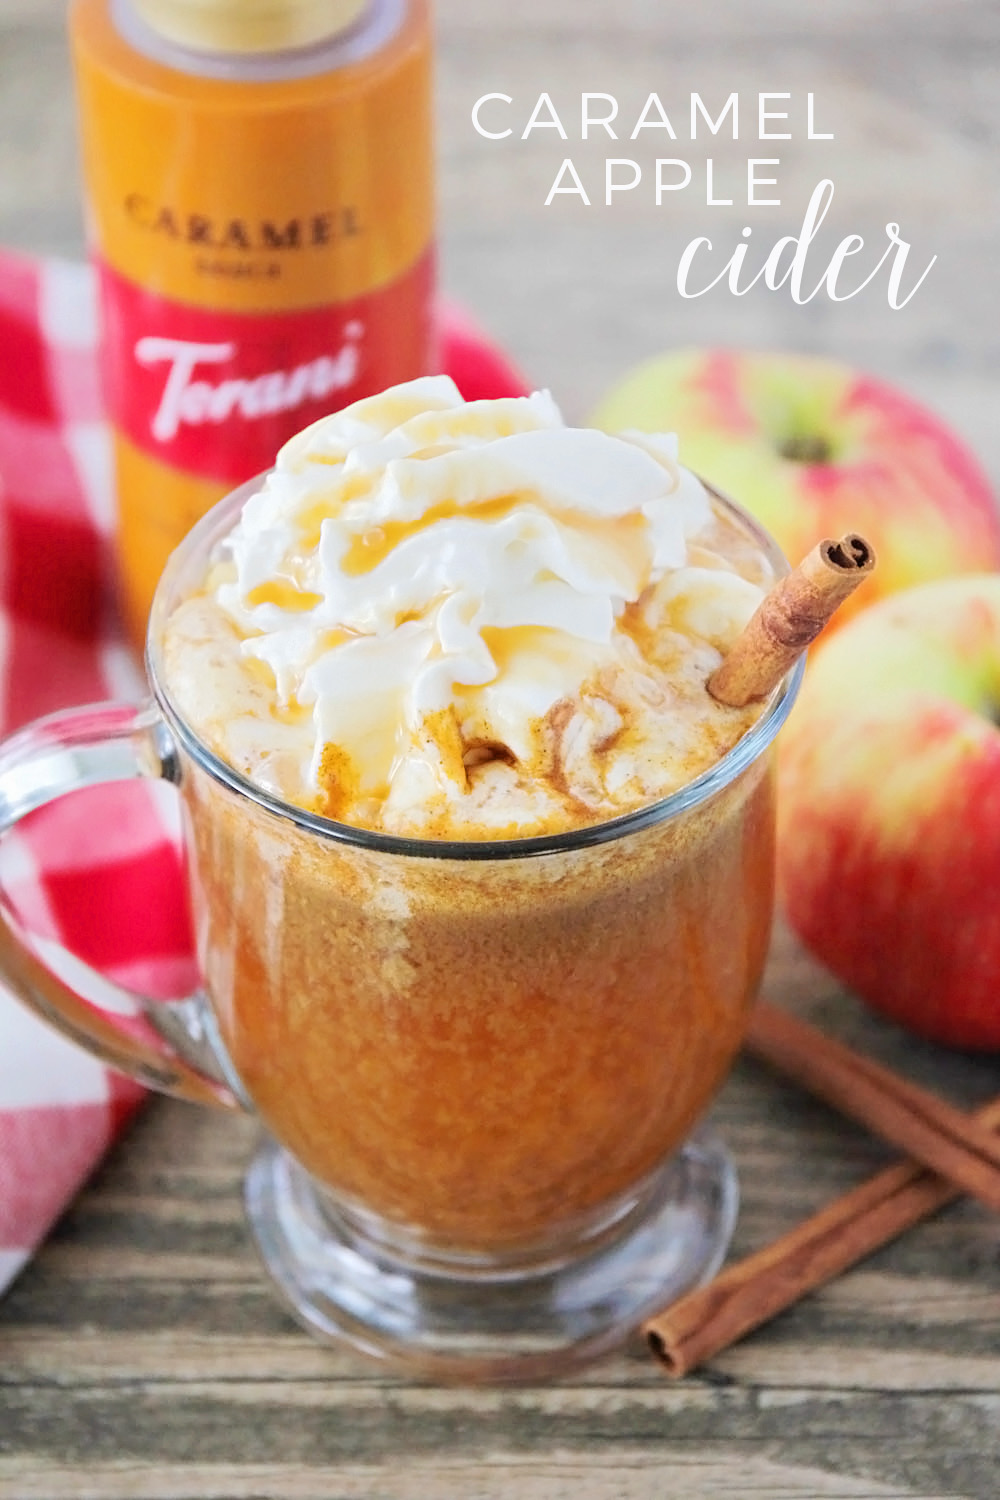 This caramel apple cider is full of delicious fall flavors! The perfect drink to cozy up with this season.